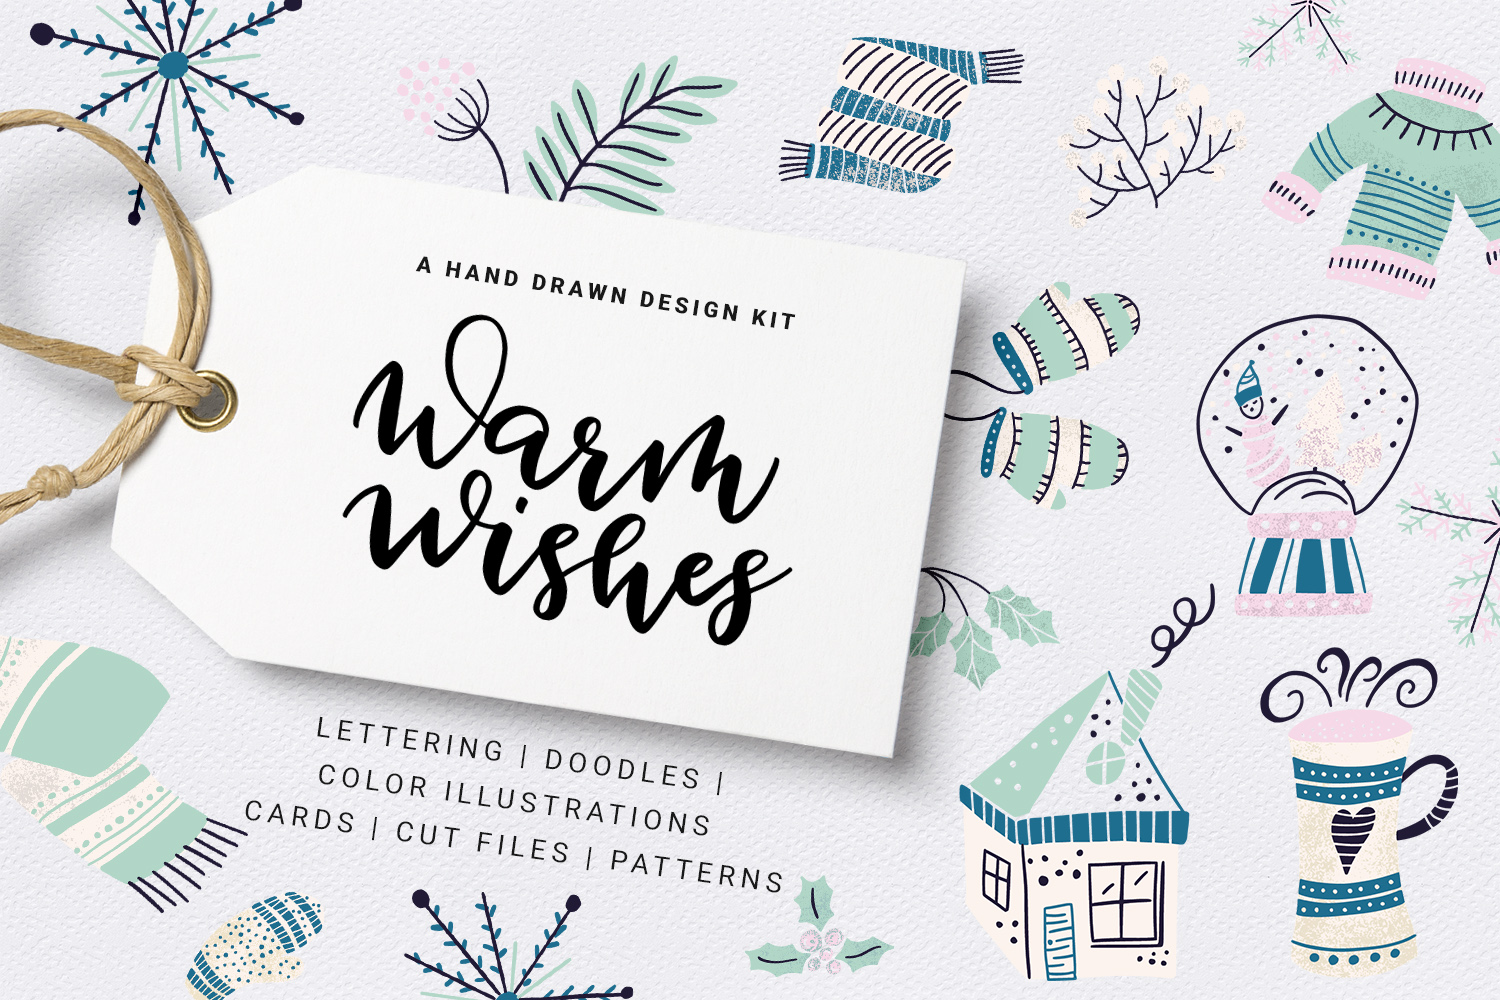 Warm Wishes - winter design kit example image 1